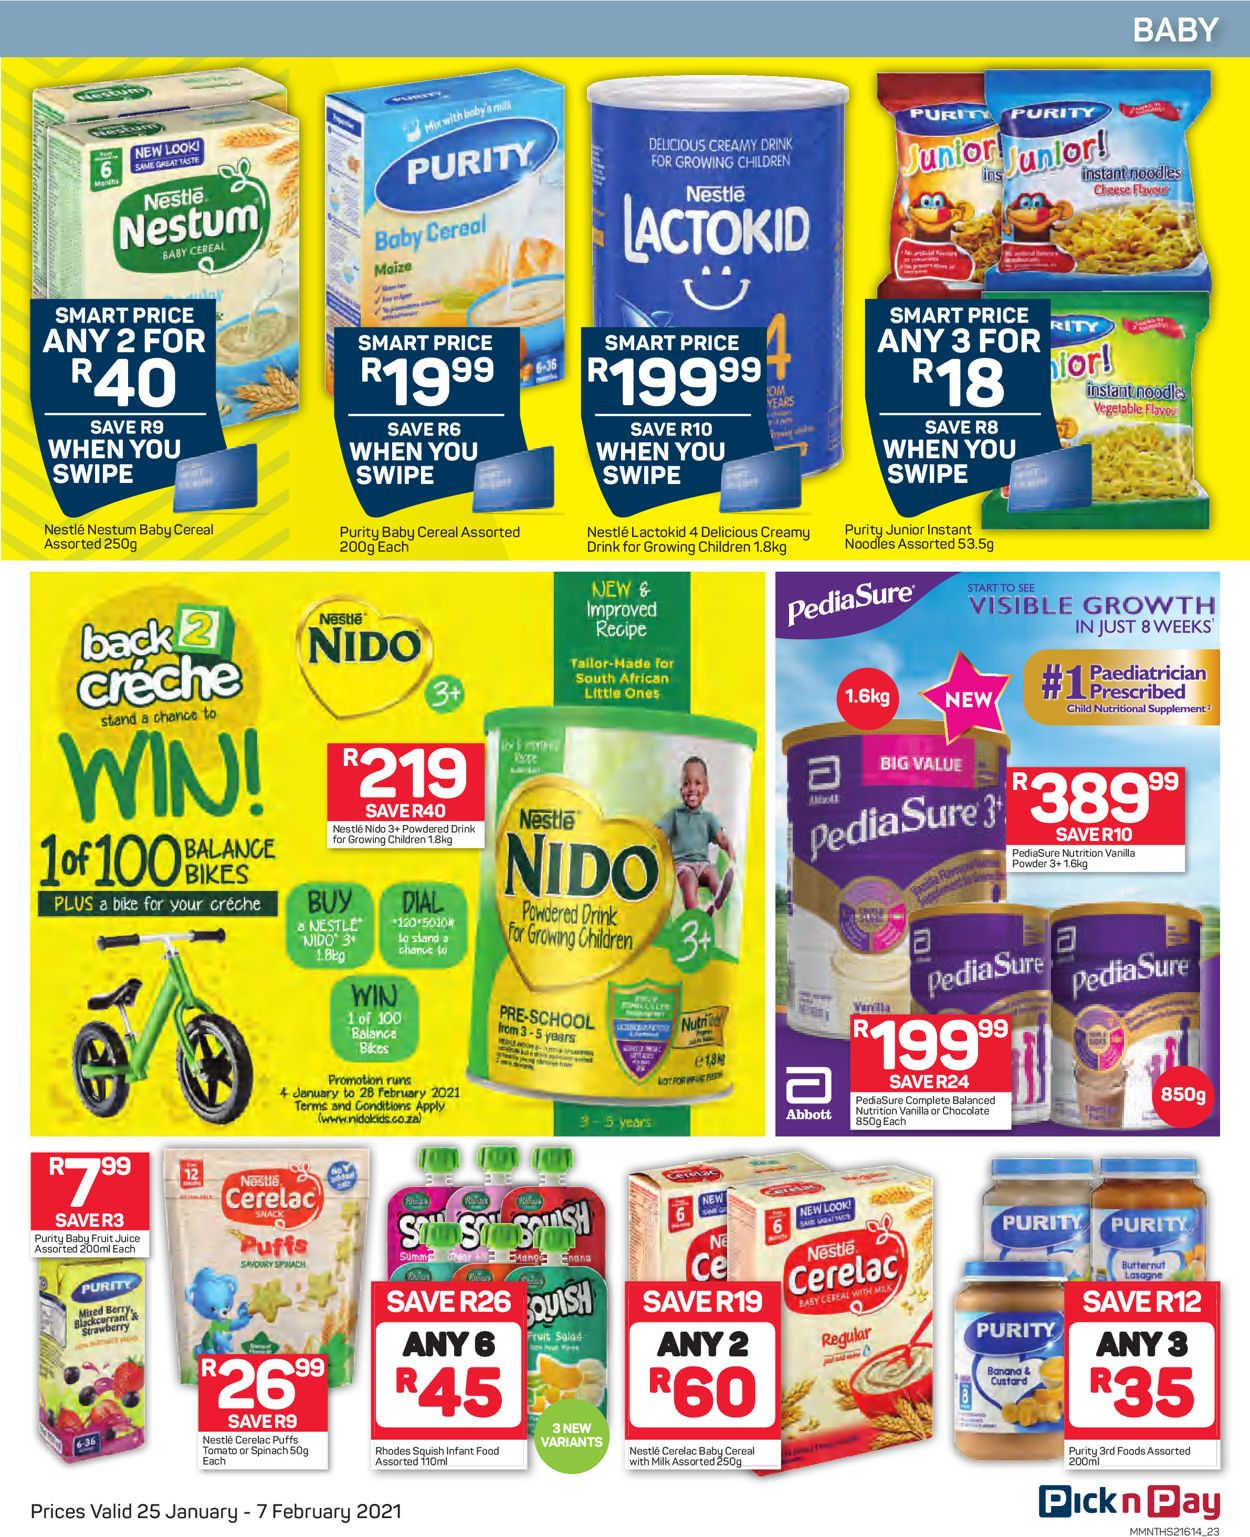 Pick n Pay Savings on Health and Beauty 2021 Catalogue - 2021/01/25-2021/02/07 (Page 24)